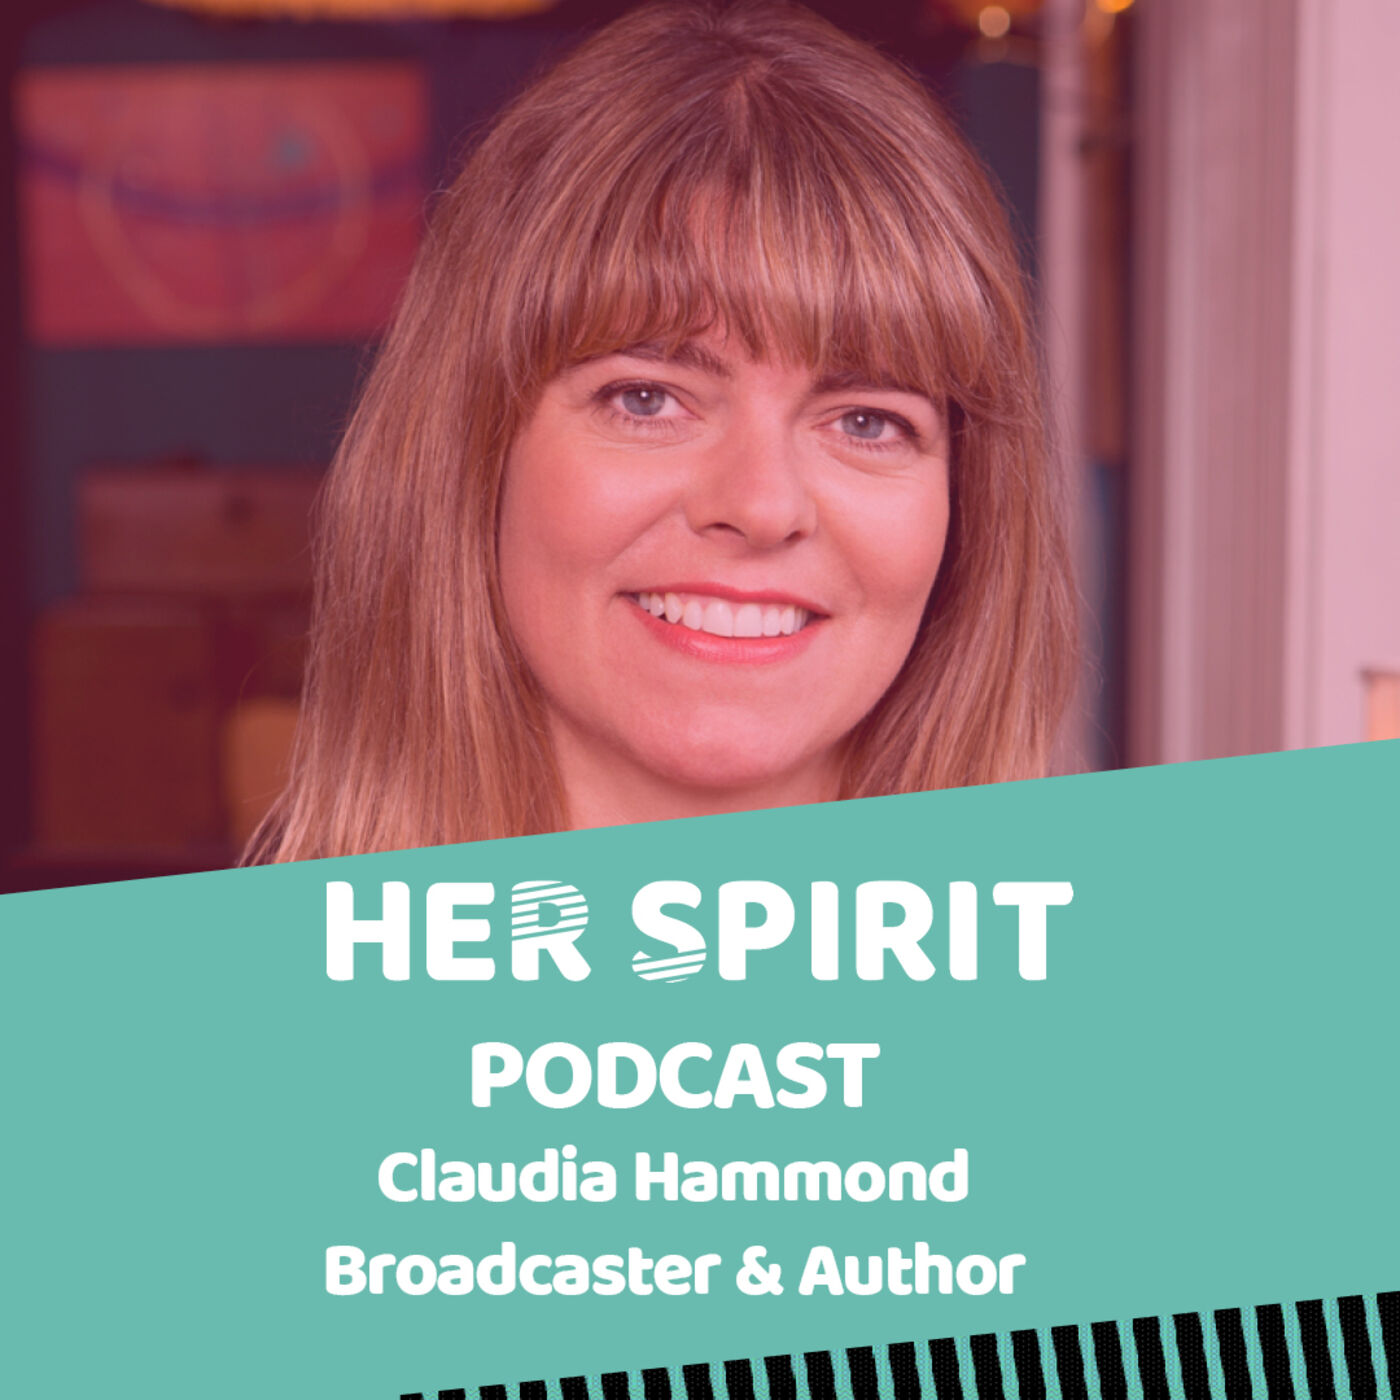 Award winning broadcaster and author Claudia Hammond talks about the art of rest and why taking small breaks are so important.